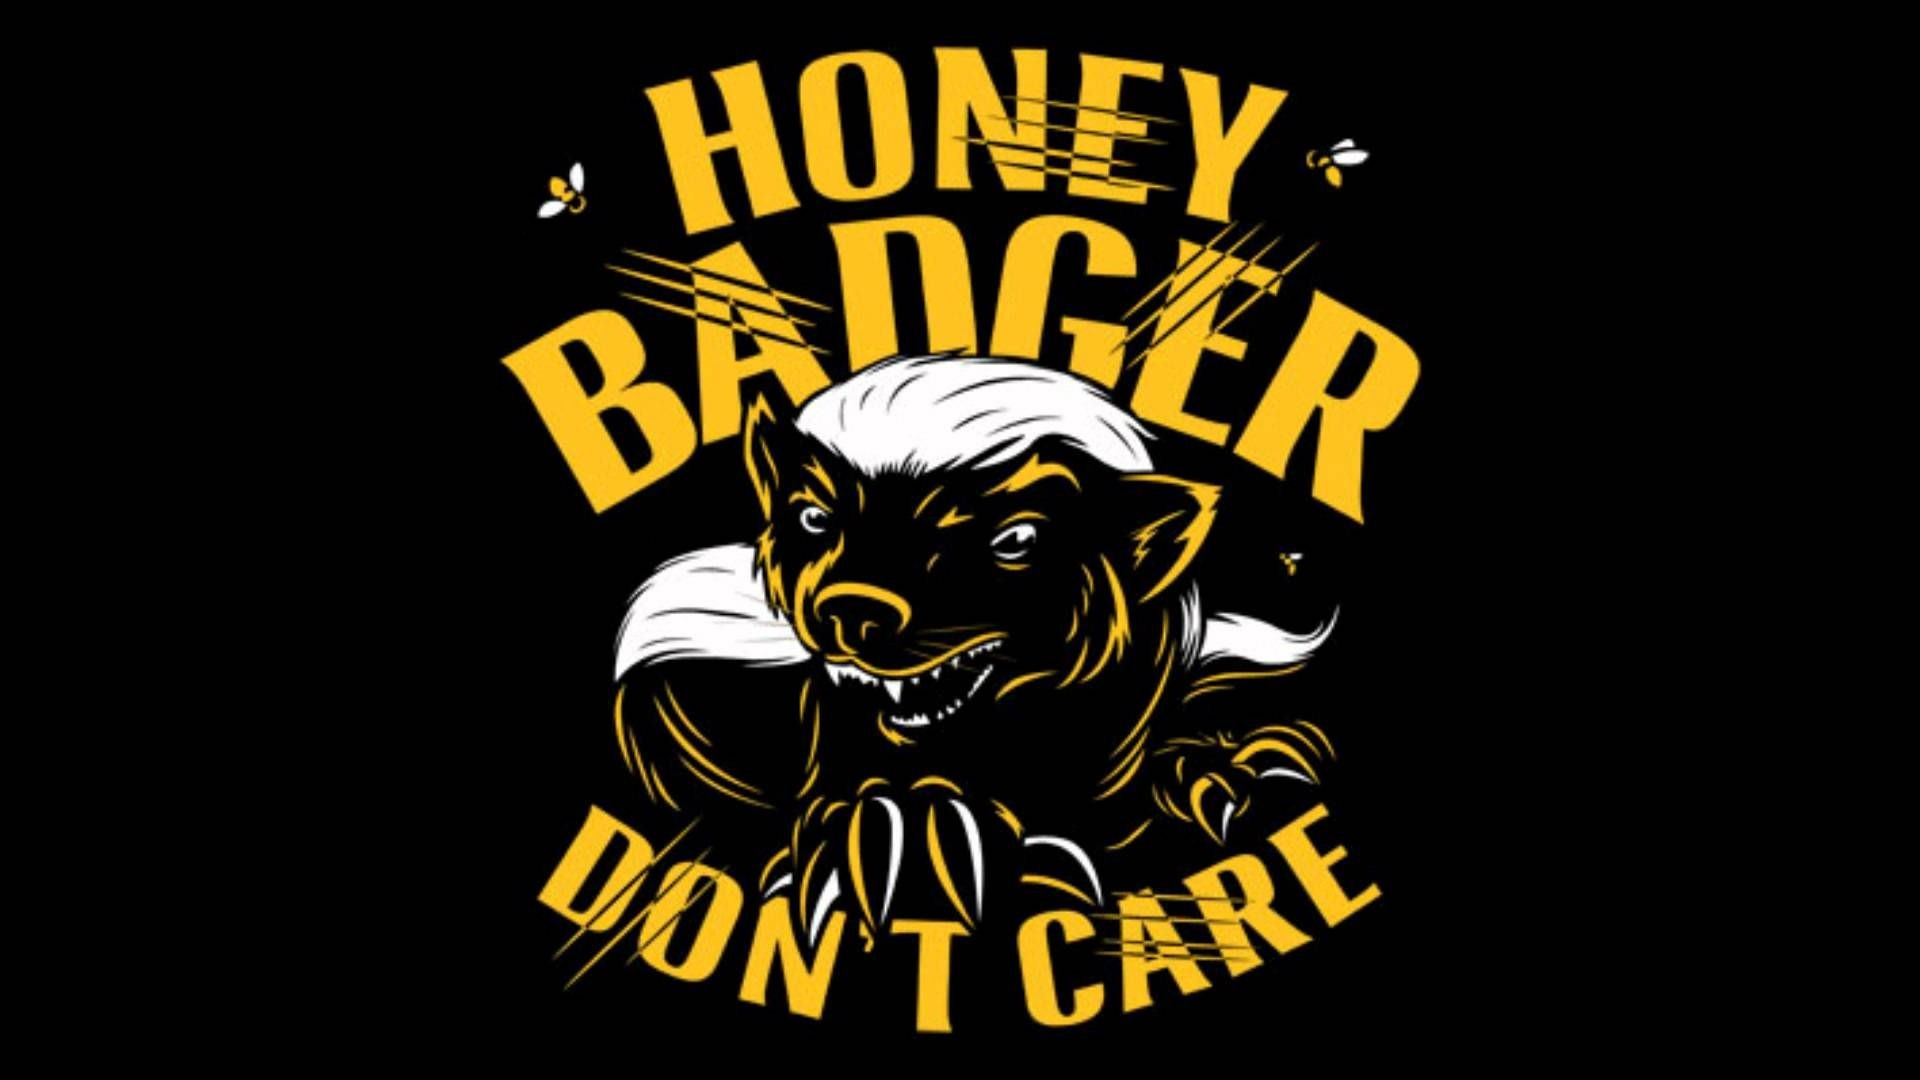 1920x1080 Honey Badger Wallpapers   Honey Badger Backgrounds and .